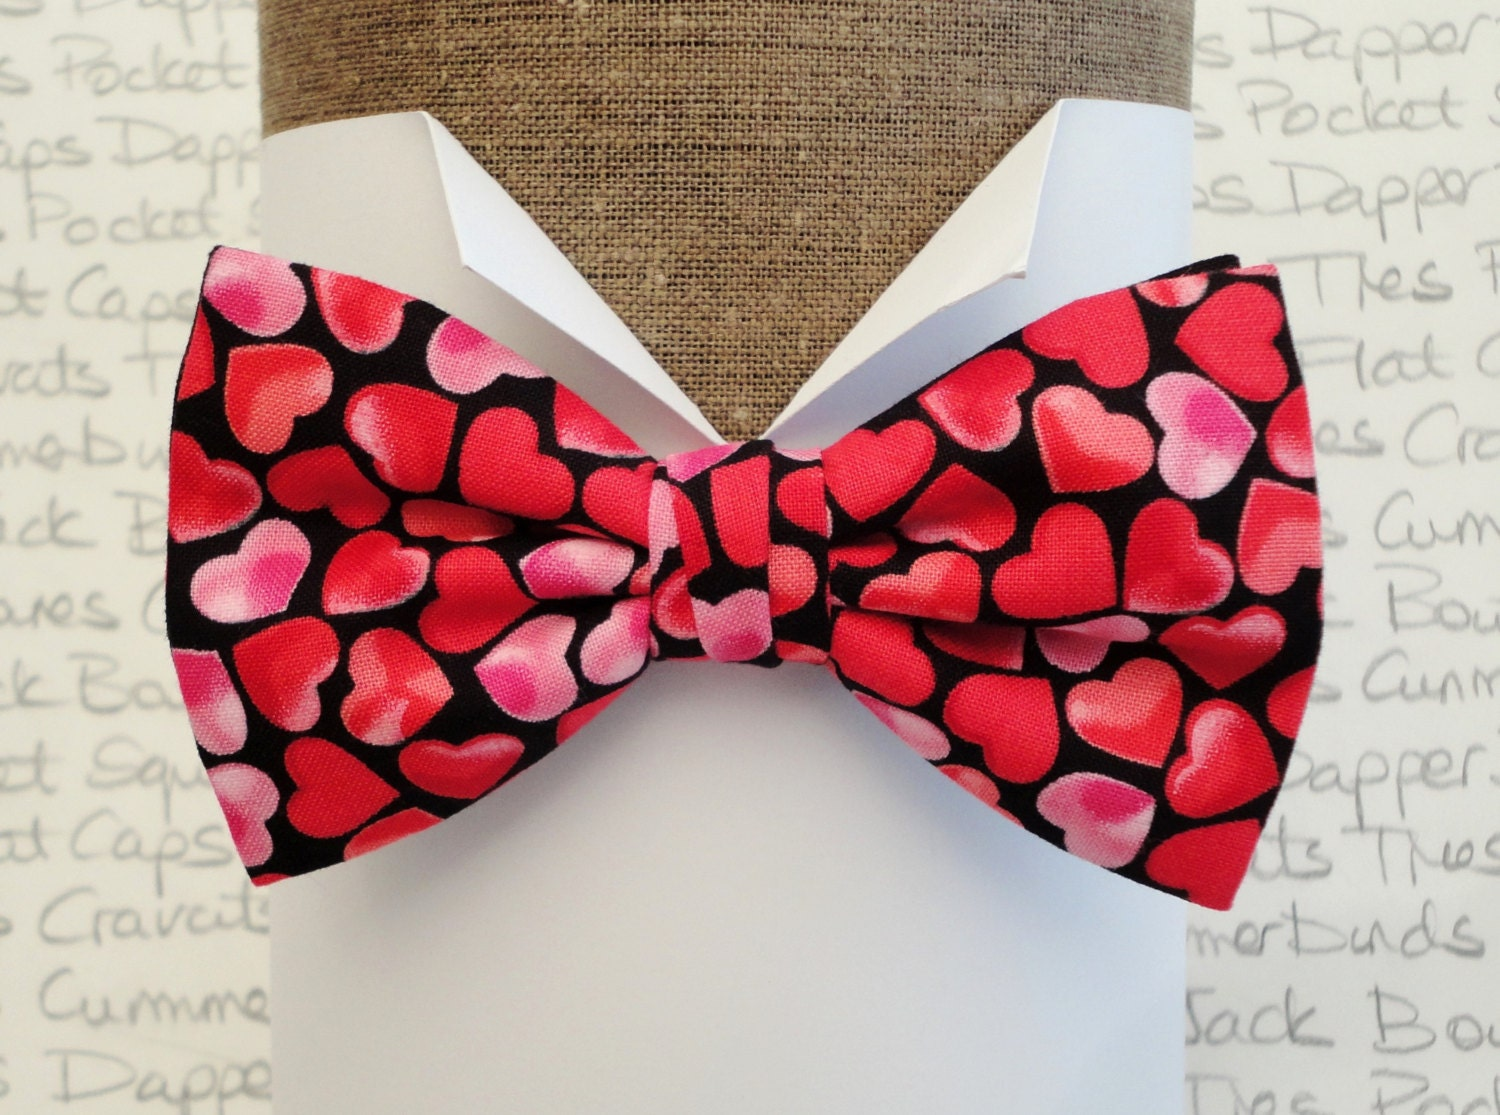 Bow tie bow ties for men Valentines bow tie heart print bow